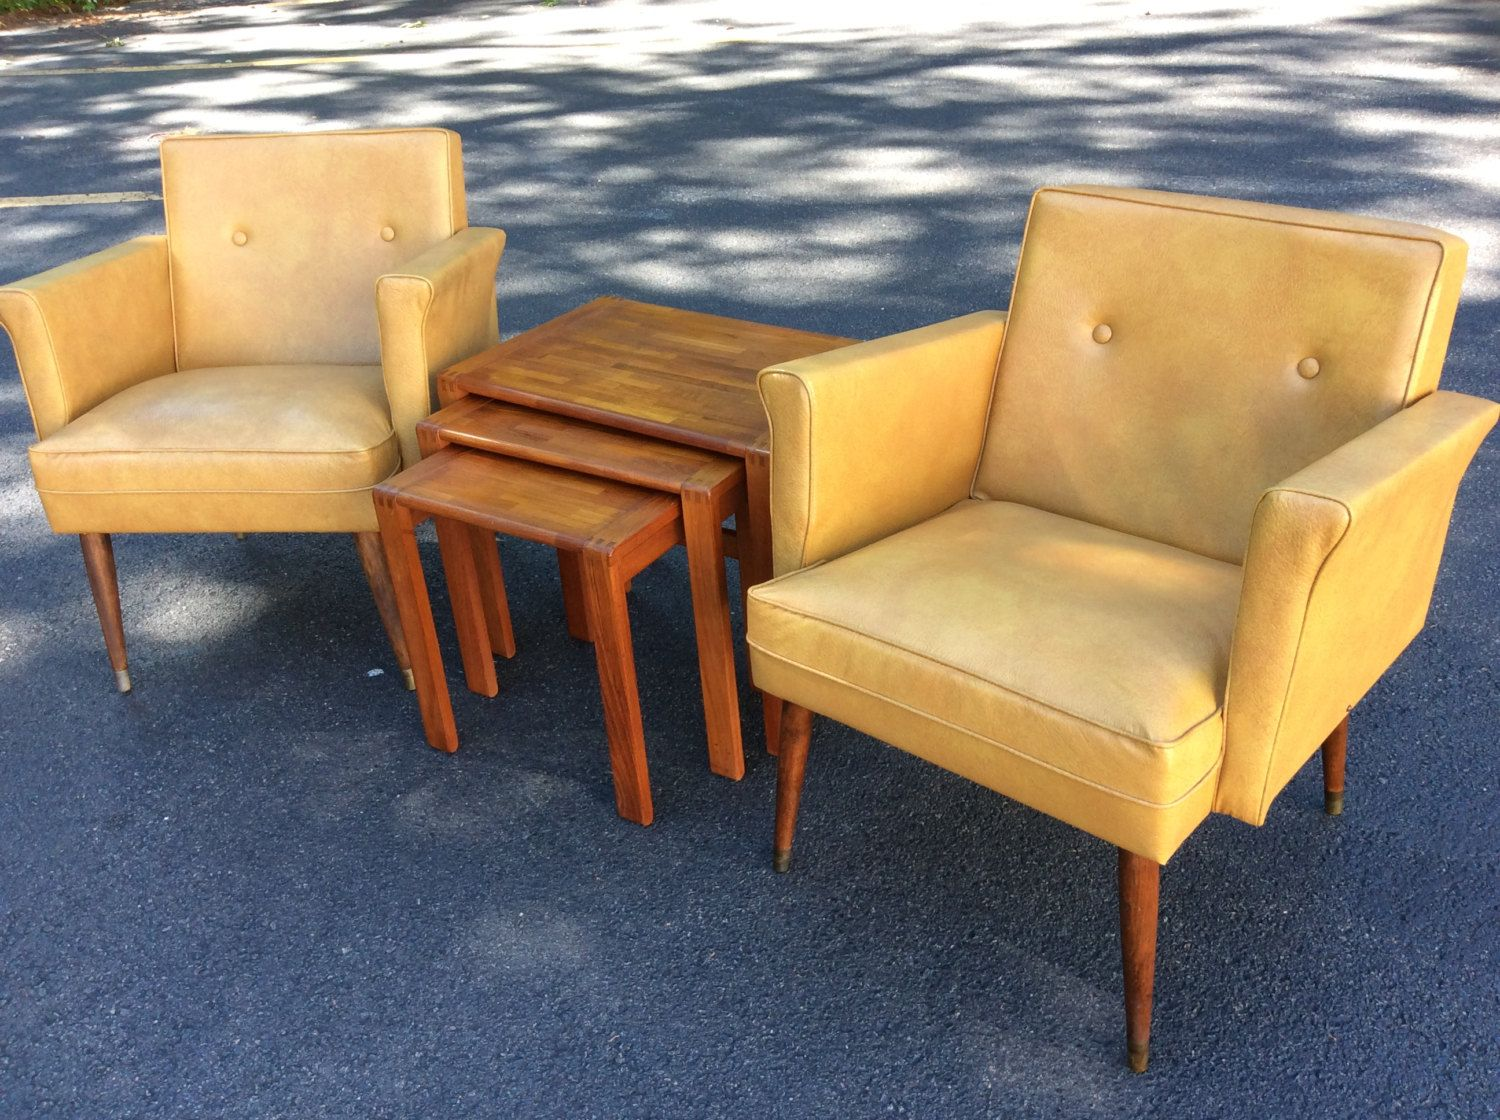 Stupendous Two Mid Century Modern Side Chairs Yellow Side Chairs Andrewgaddart Wooden Chair Designs For Living Room Andrewgaddartcom